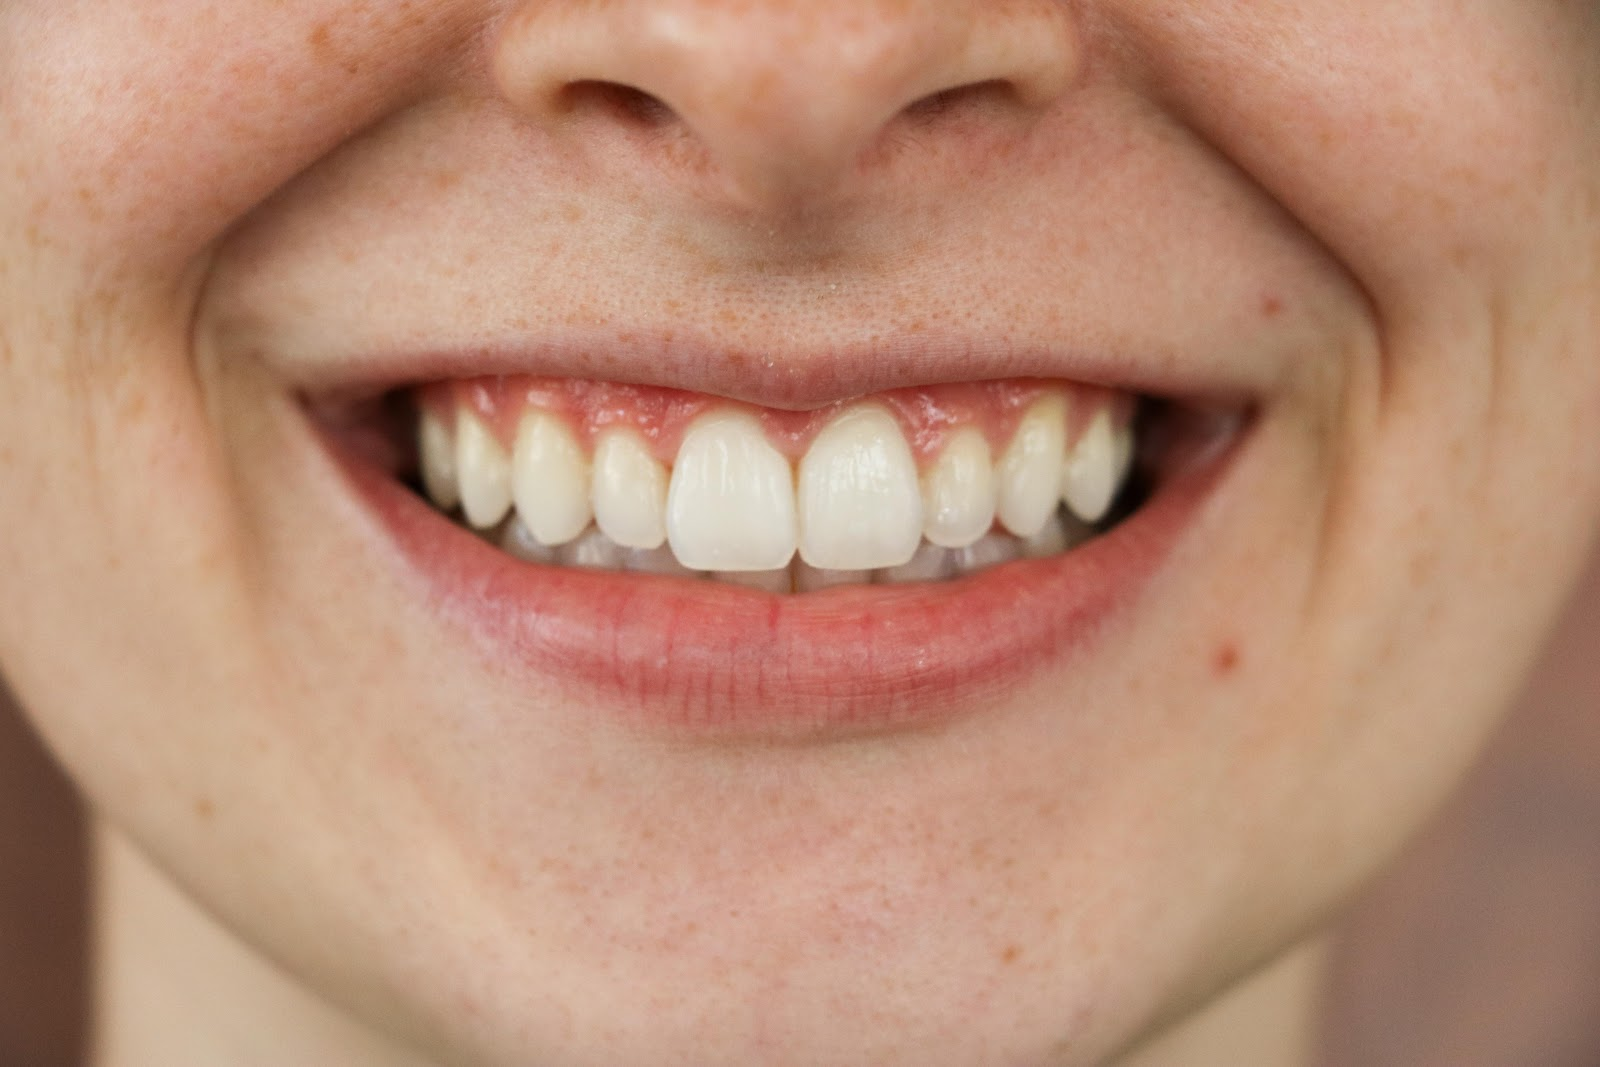 Sydney's teeth before with teeth stains